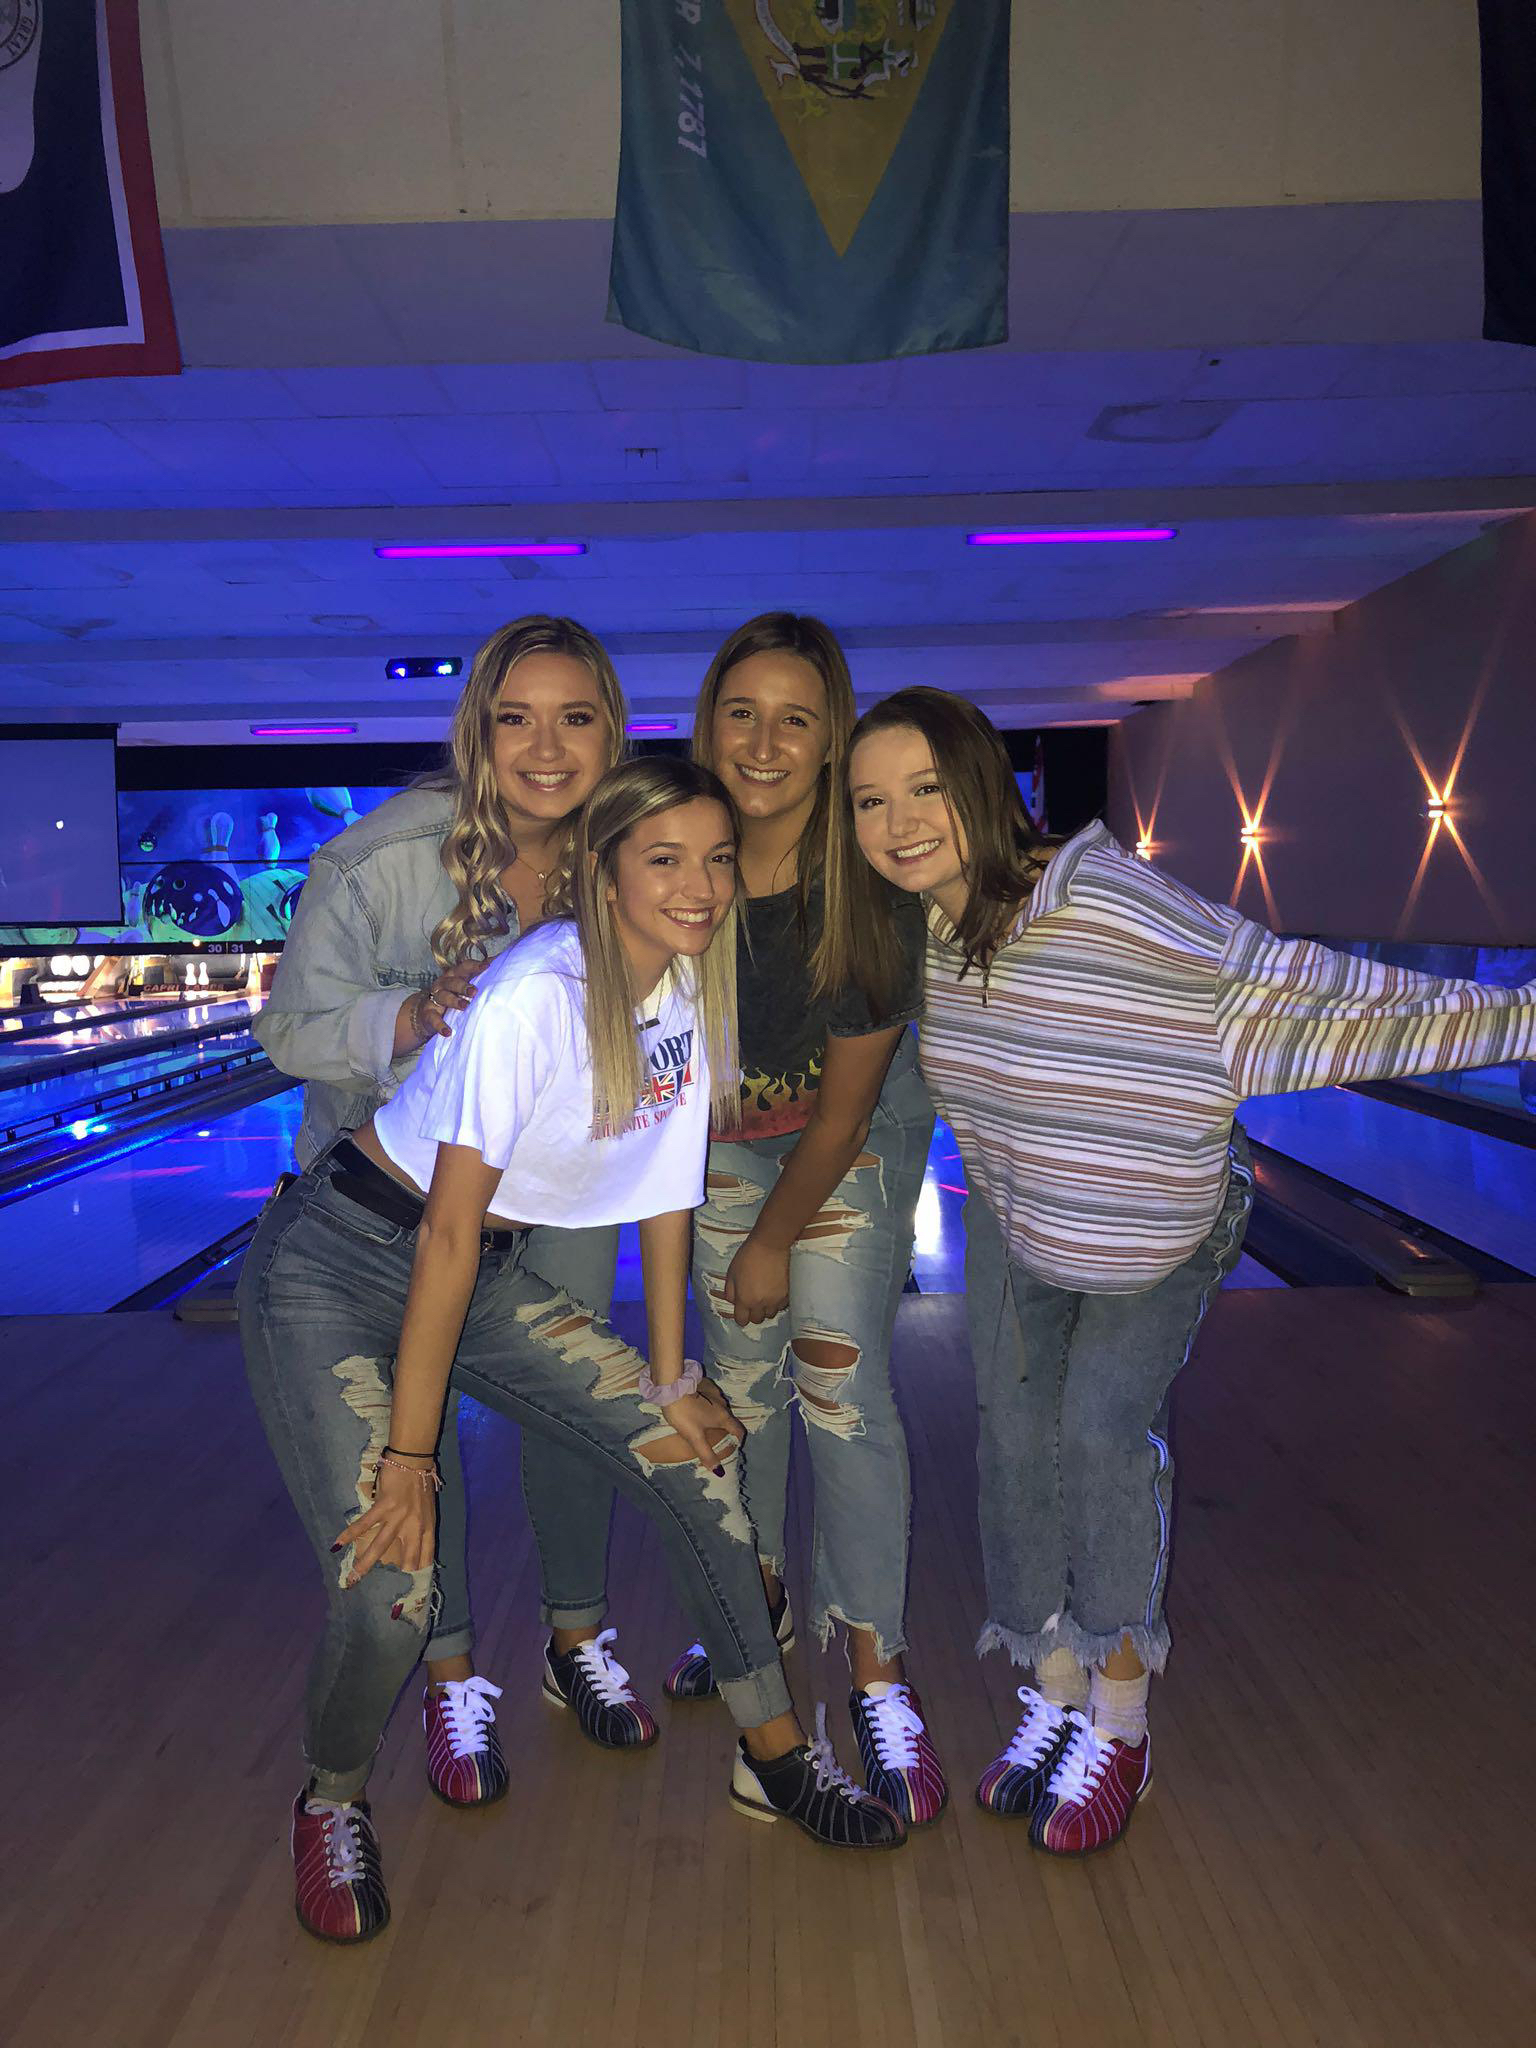 90s Bowling Date Party